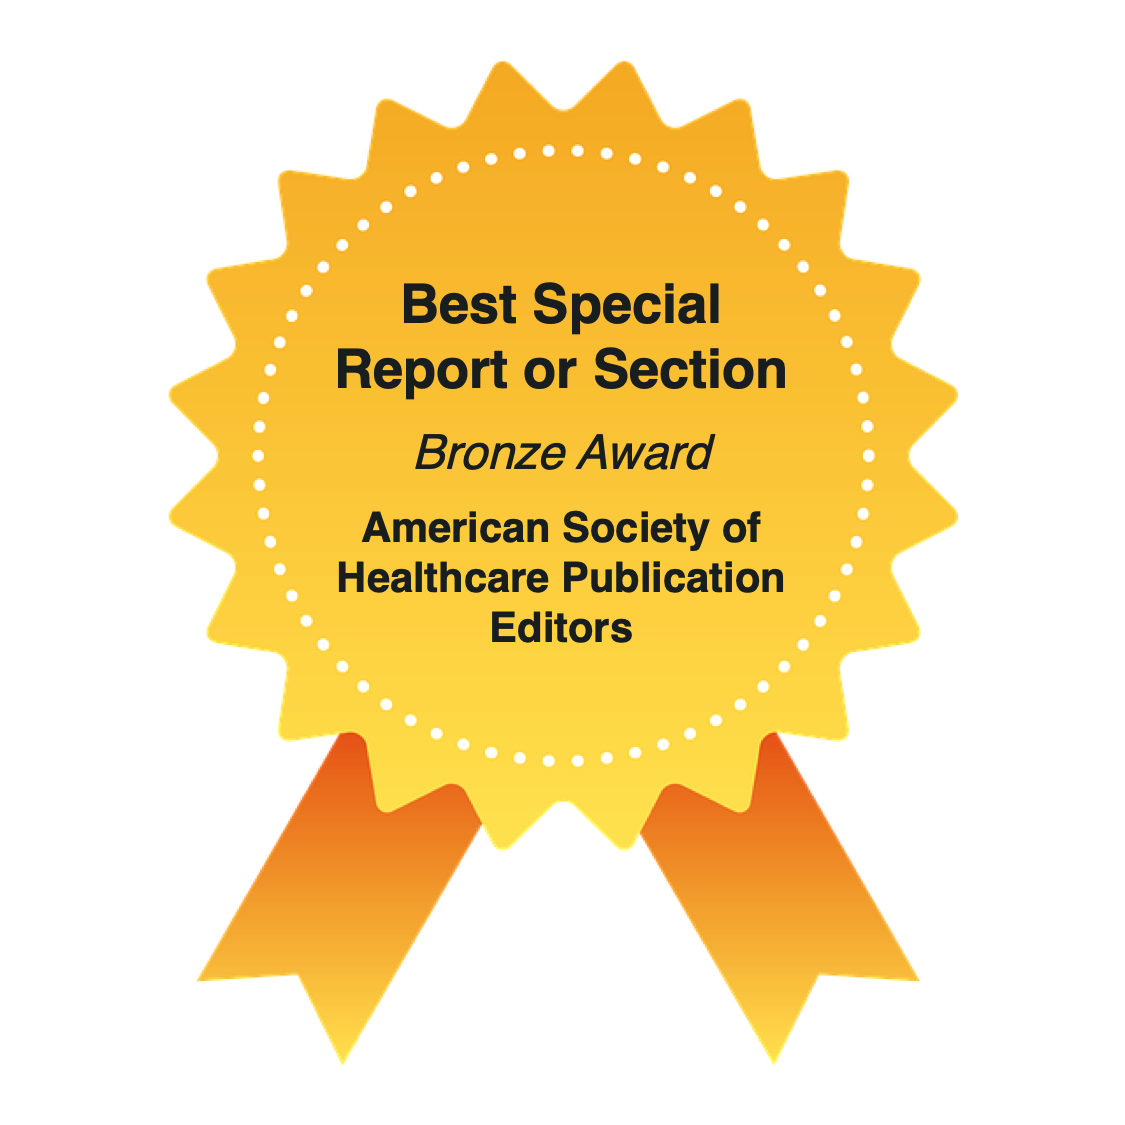 Best Special Report or Section, Bronze Award, American Society of Healthcare Publication Editors